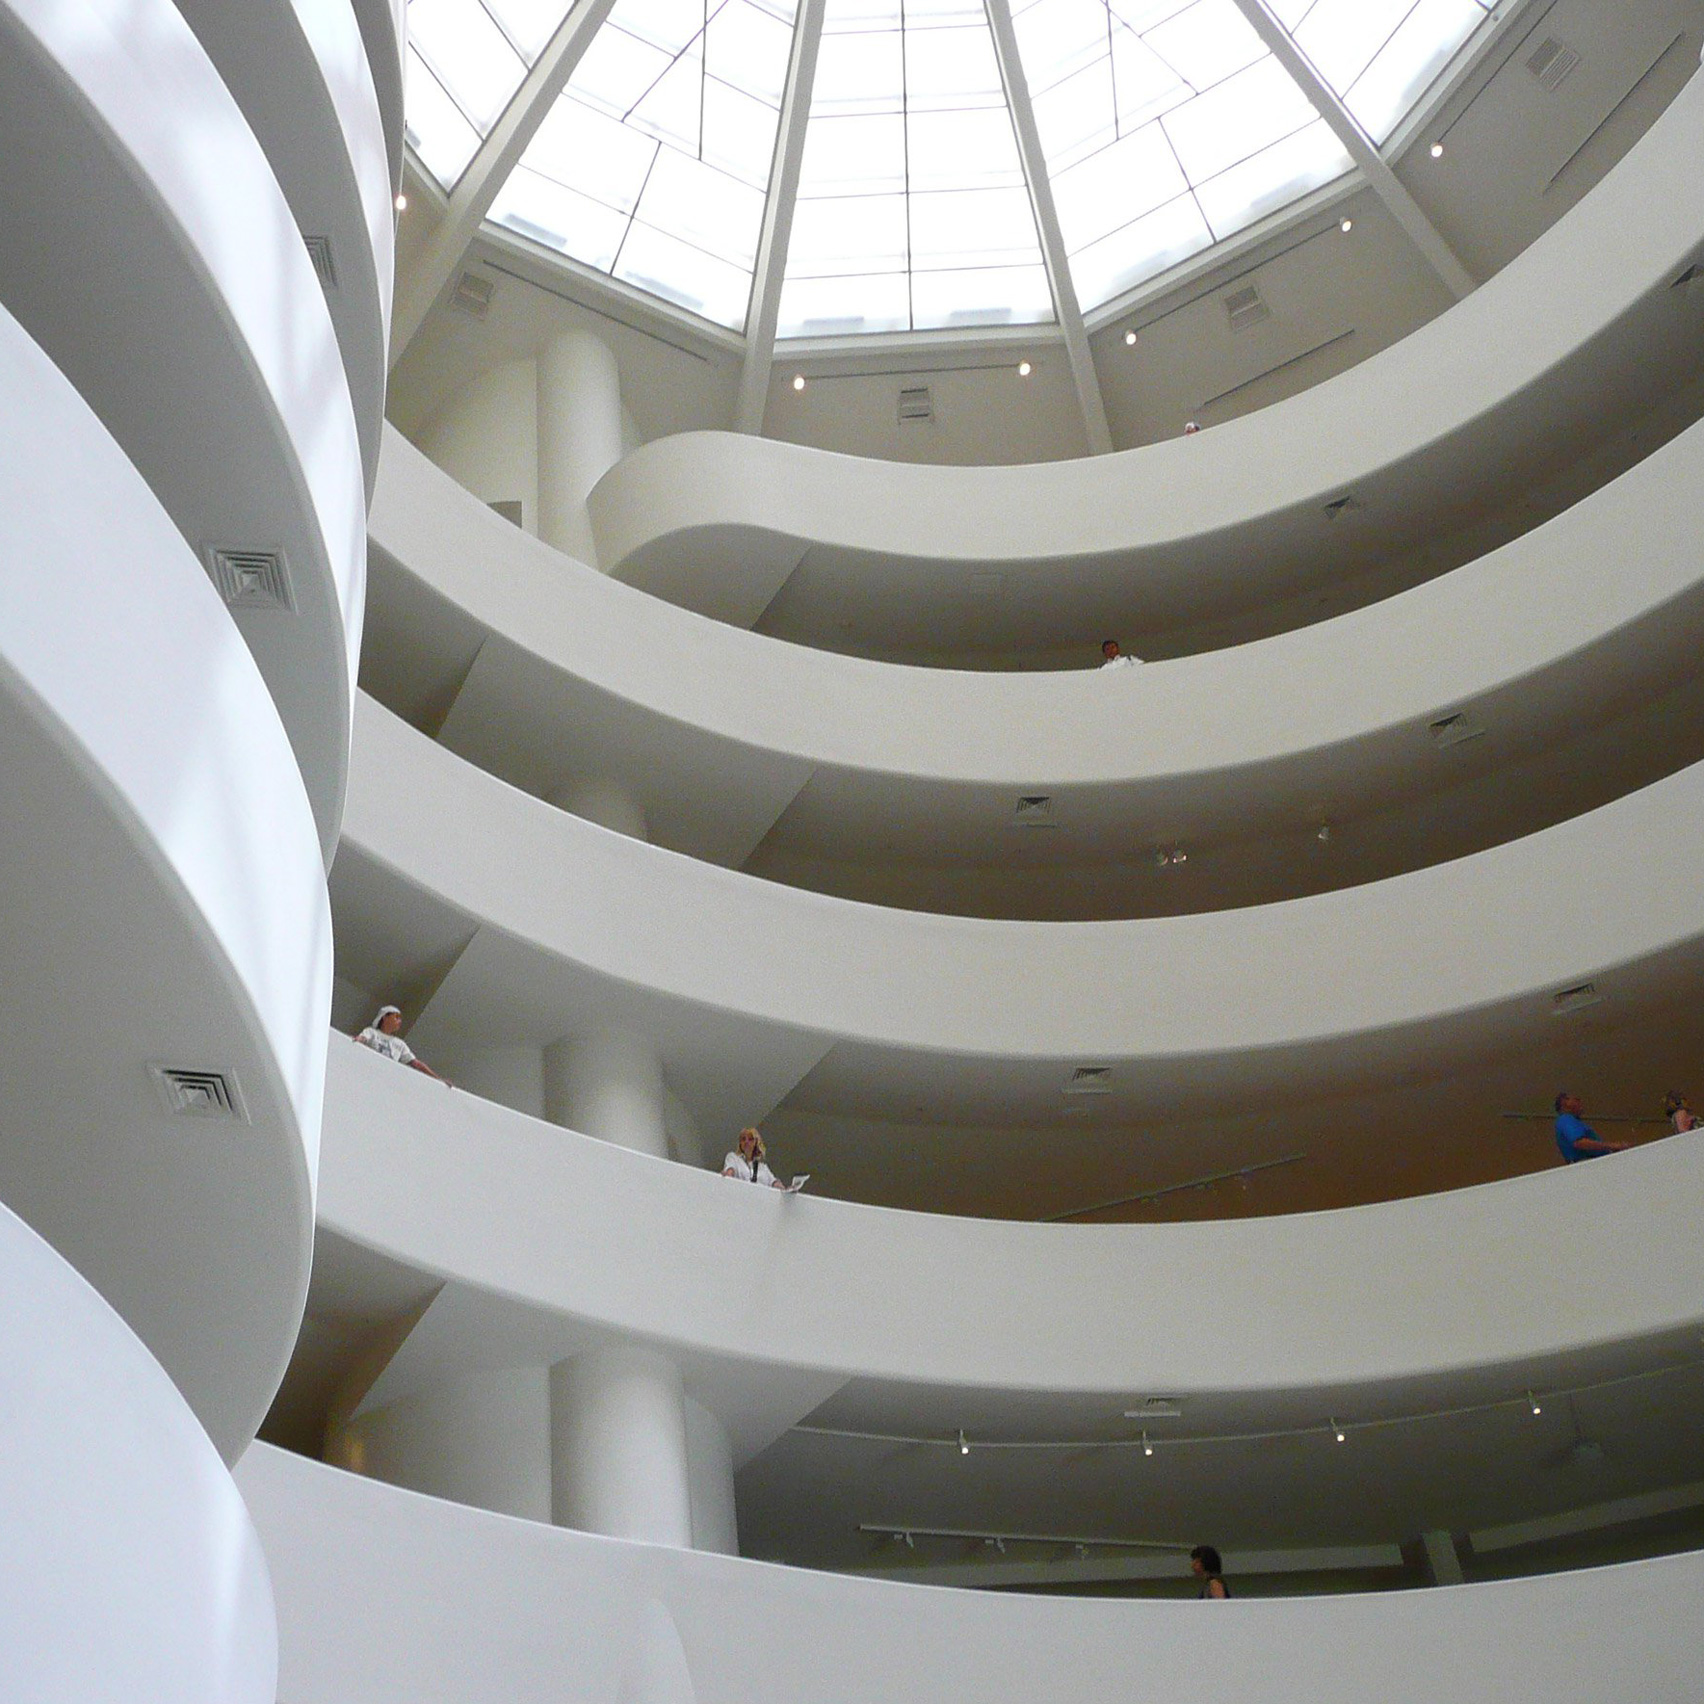 Image credit: Guggenheim Museum Website